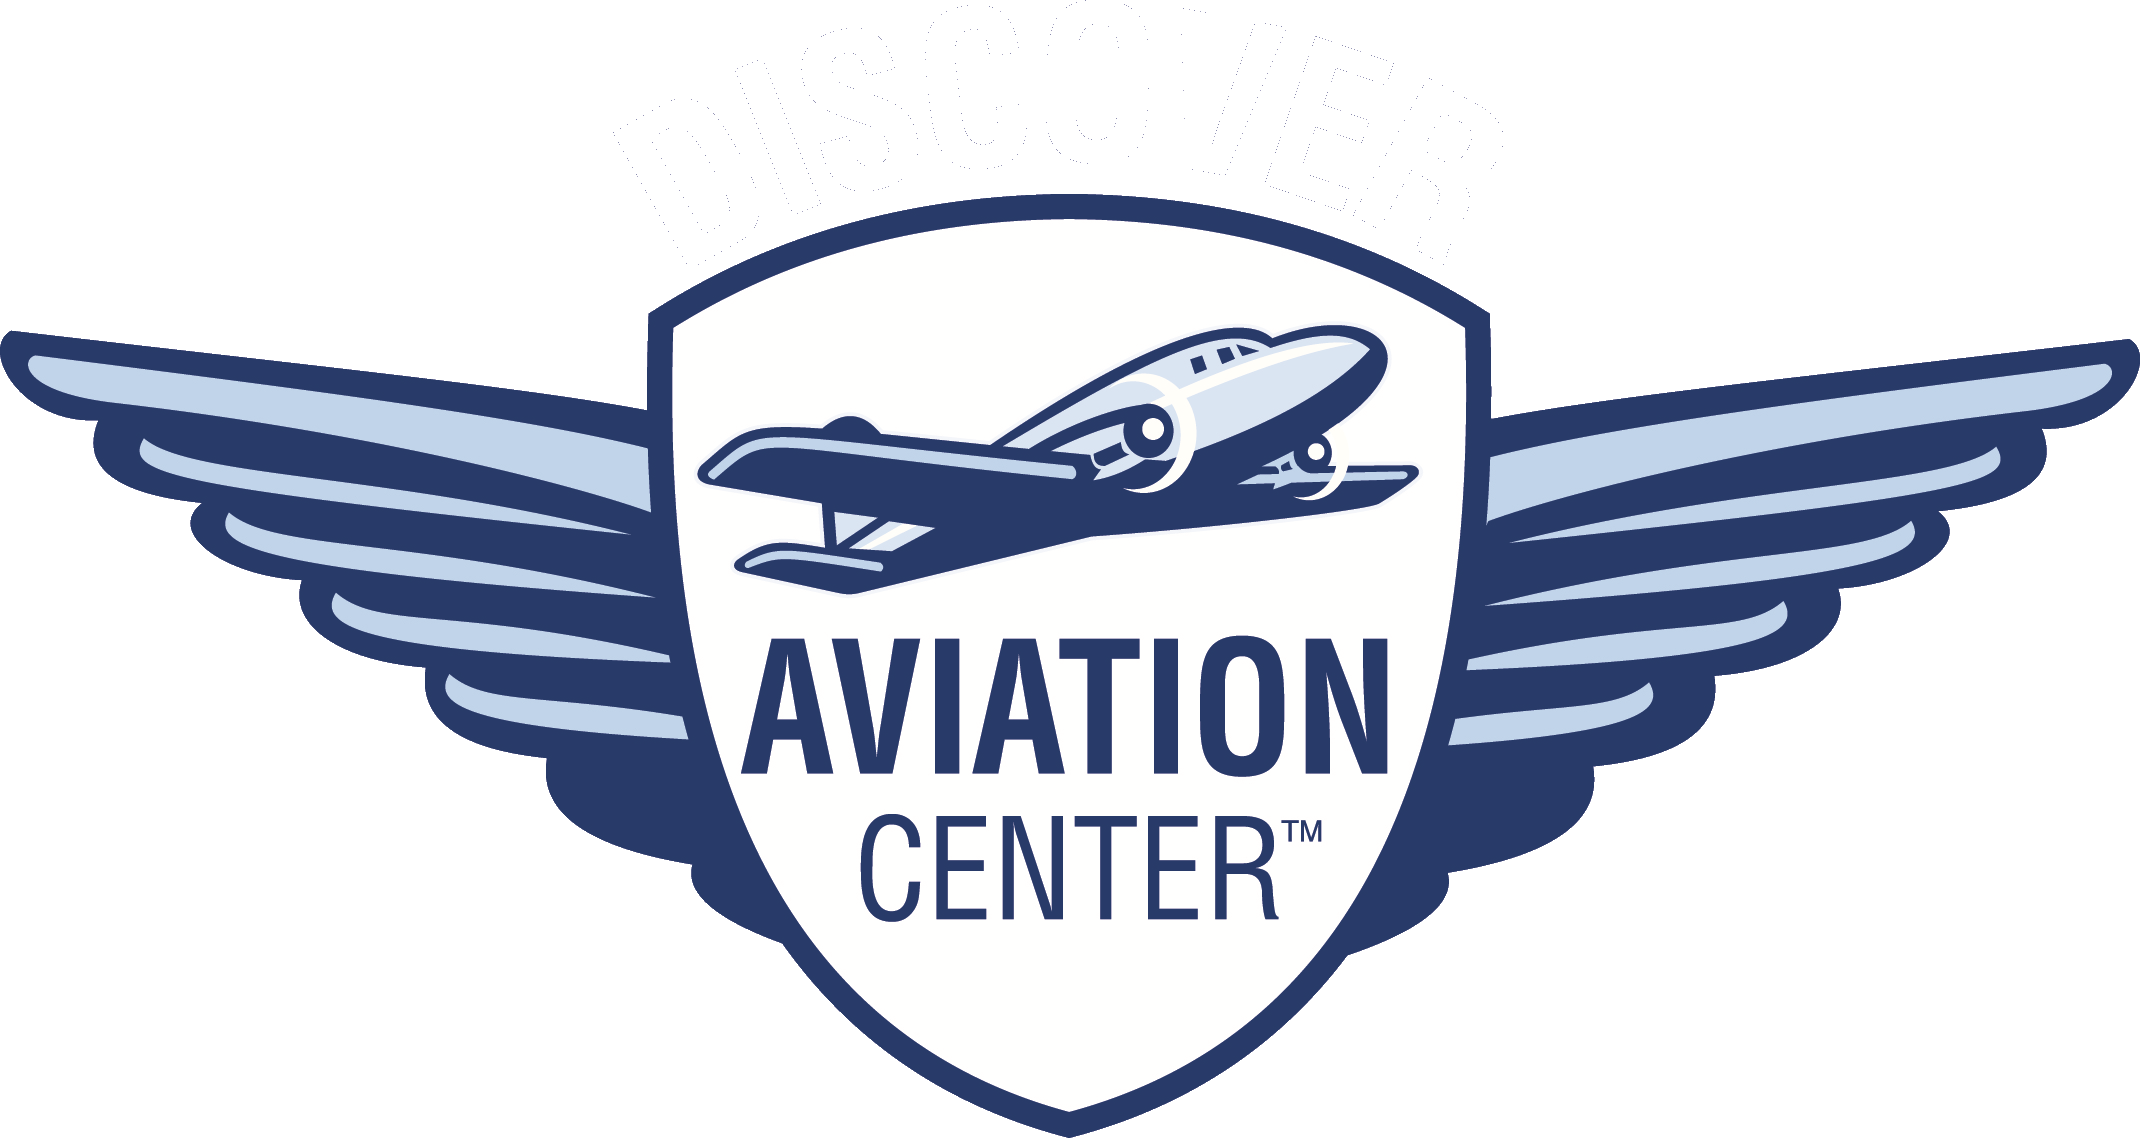 Discover Aviation Center Flying Club